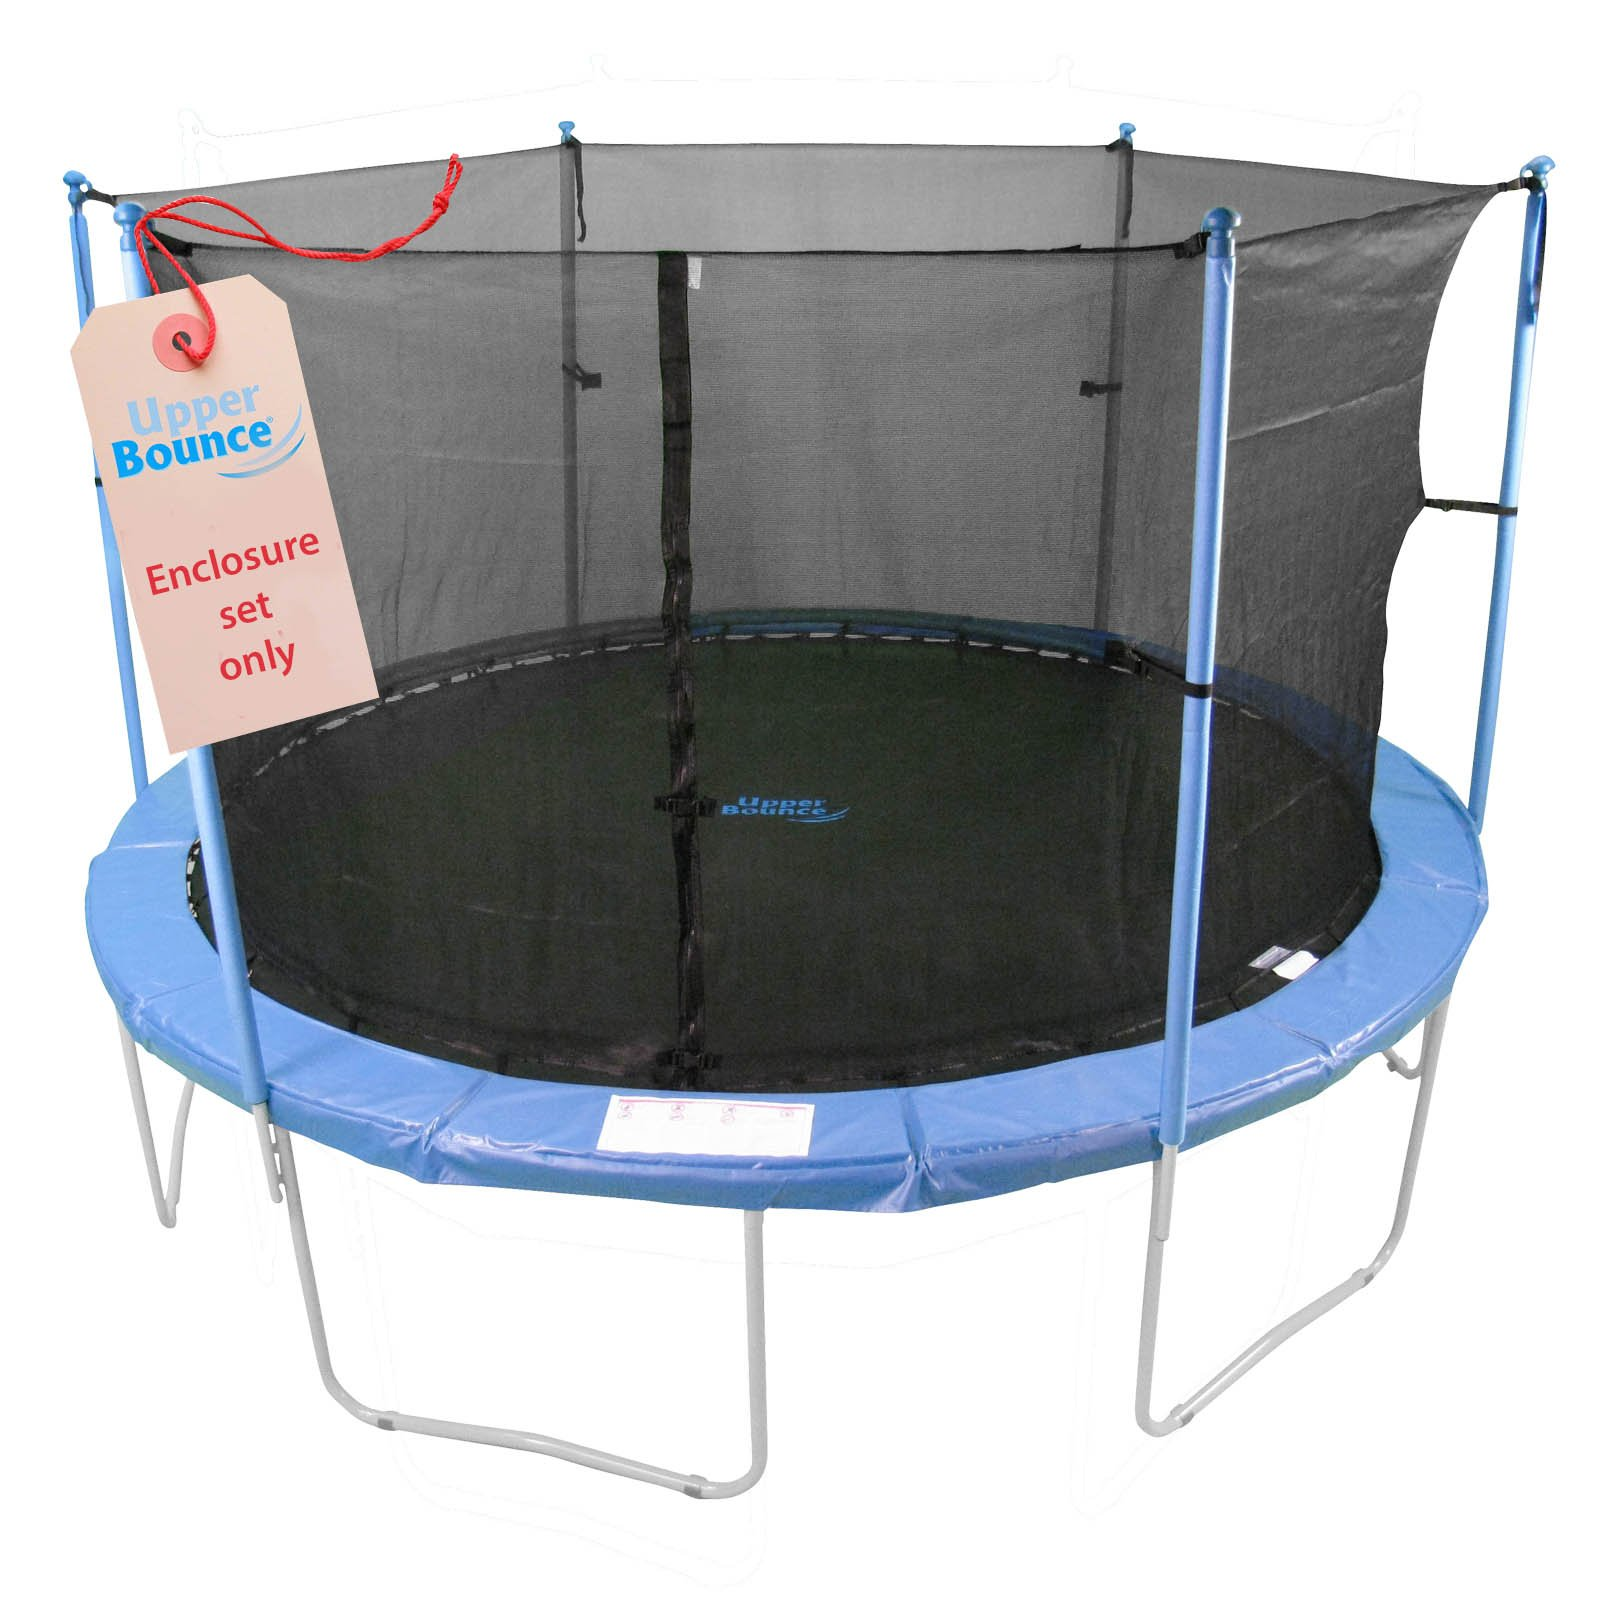 Upper Bounce Trampoline Enclosure Set, to fit 8 FT. Round Frames, for 3 or 6 W-Shaped Legs -Set Includes: Net, Poles & Hardware Only by Upper Bounce